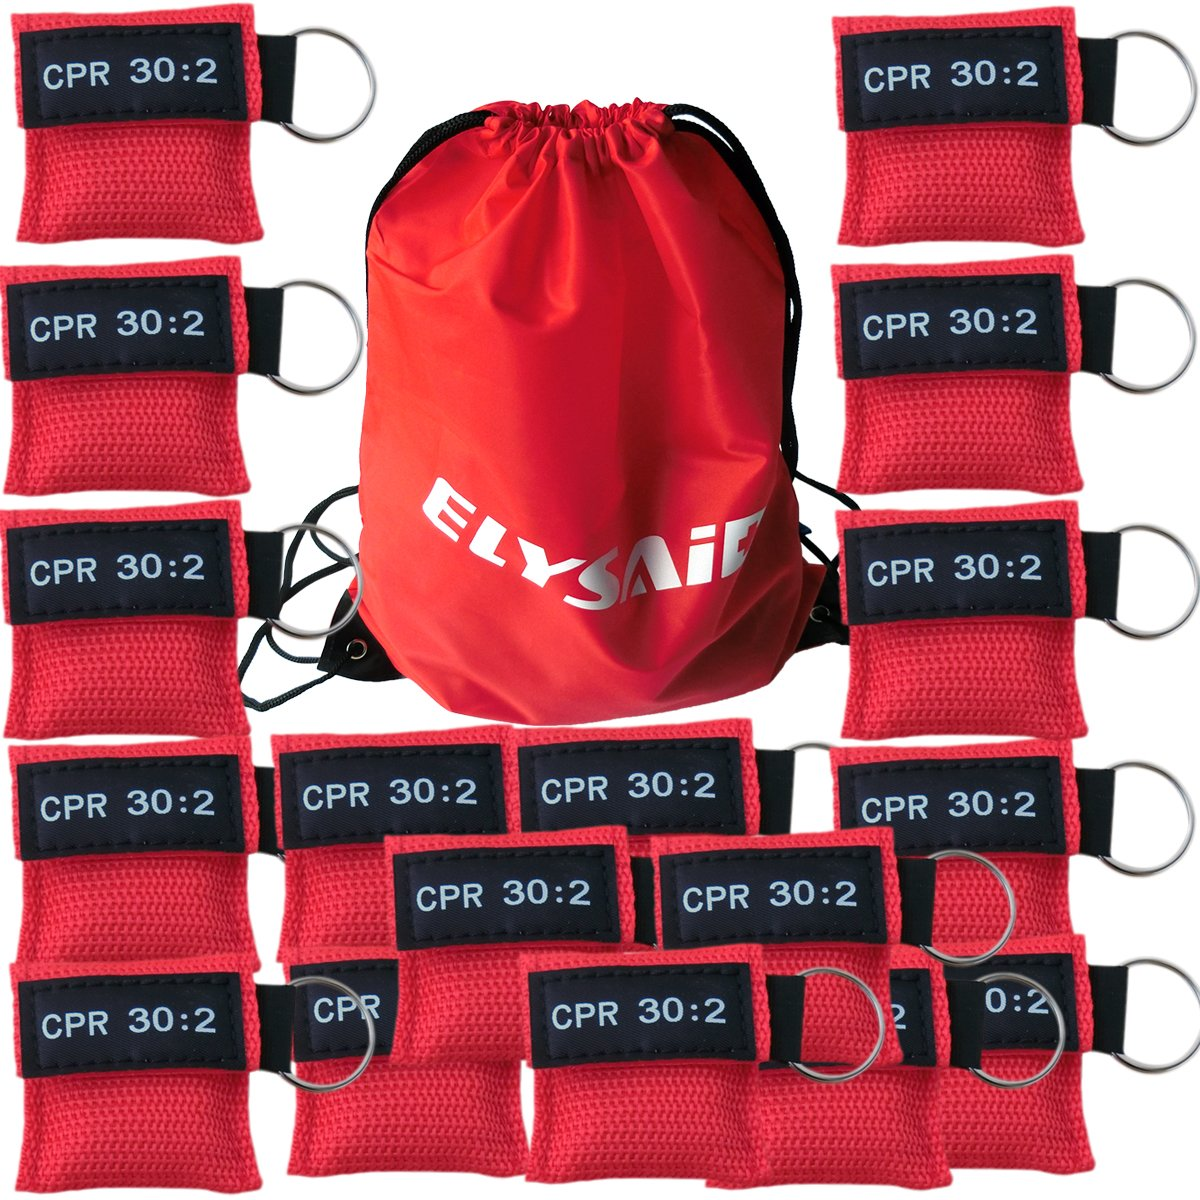 100Pcs/Pack Cpr Mask With Key Ring Cpr Face Shield For AED Training Mouth to Mouth First Aid Red Pouch Logo CPR 30:2 by KTKANG